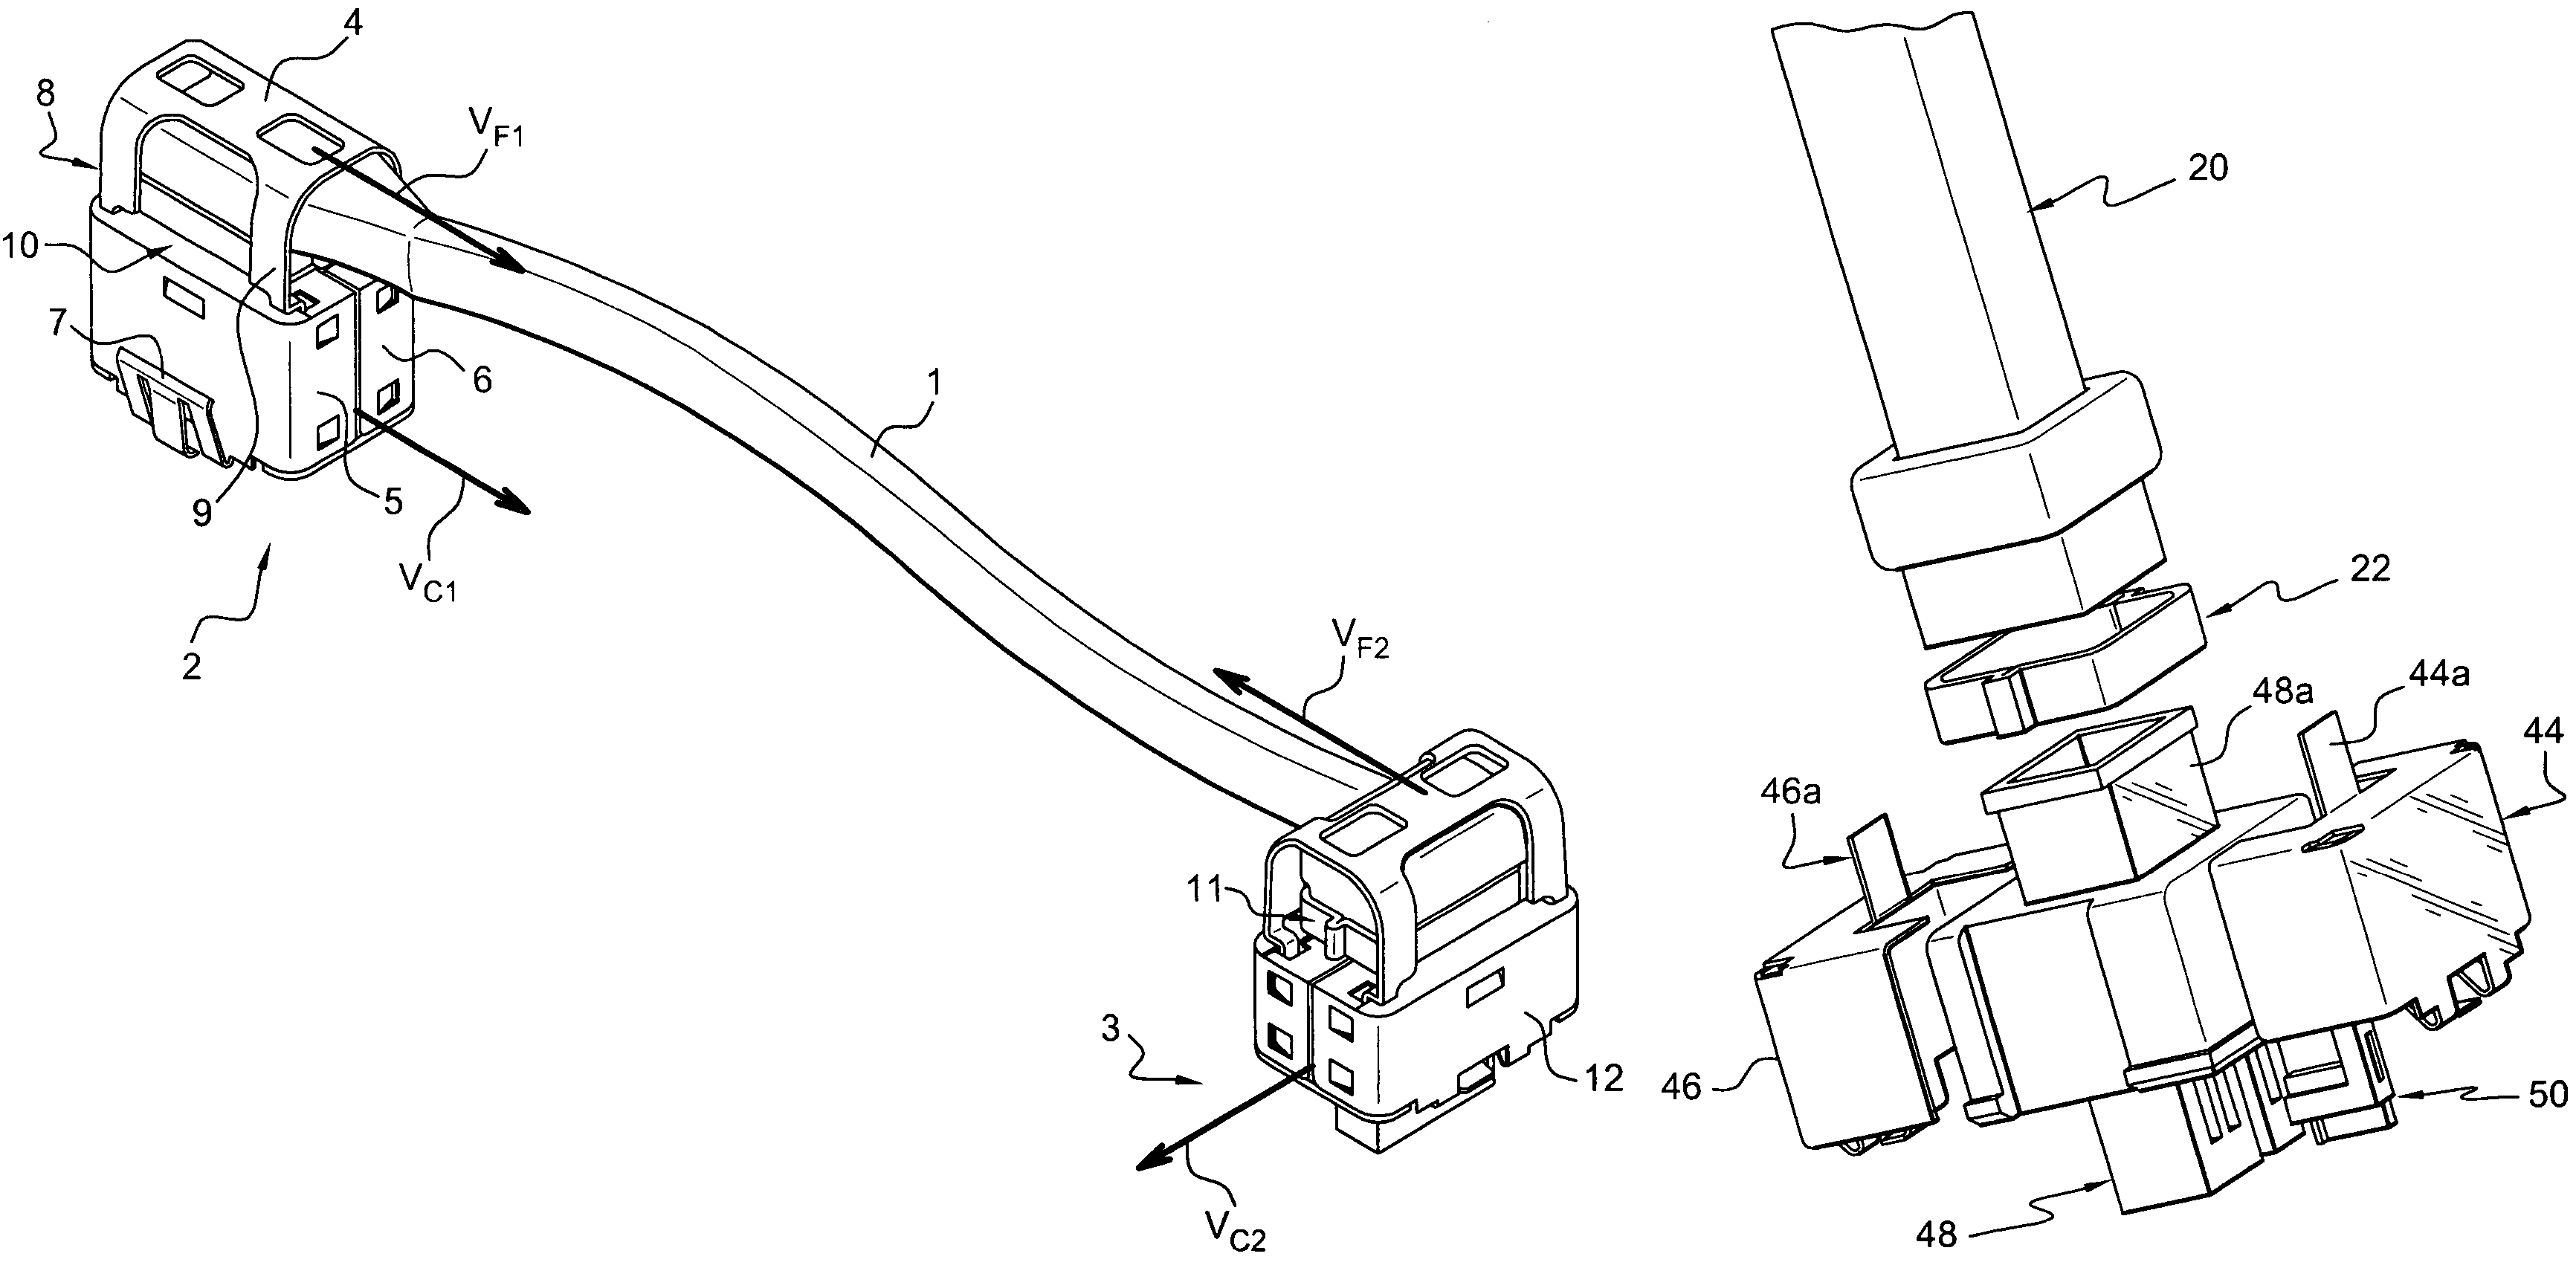 patent us7465196 - wiring harness end connector